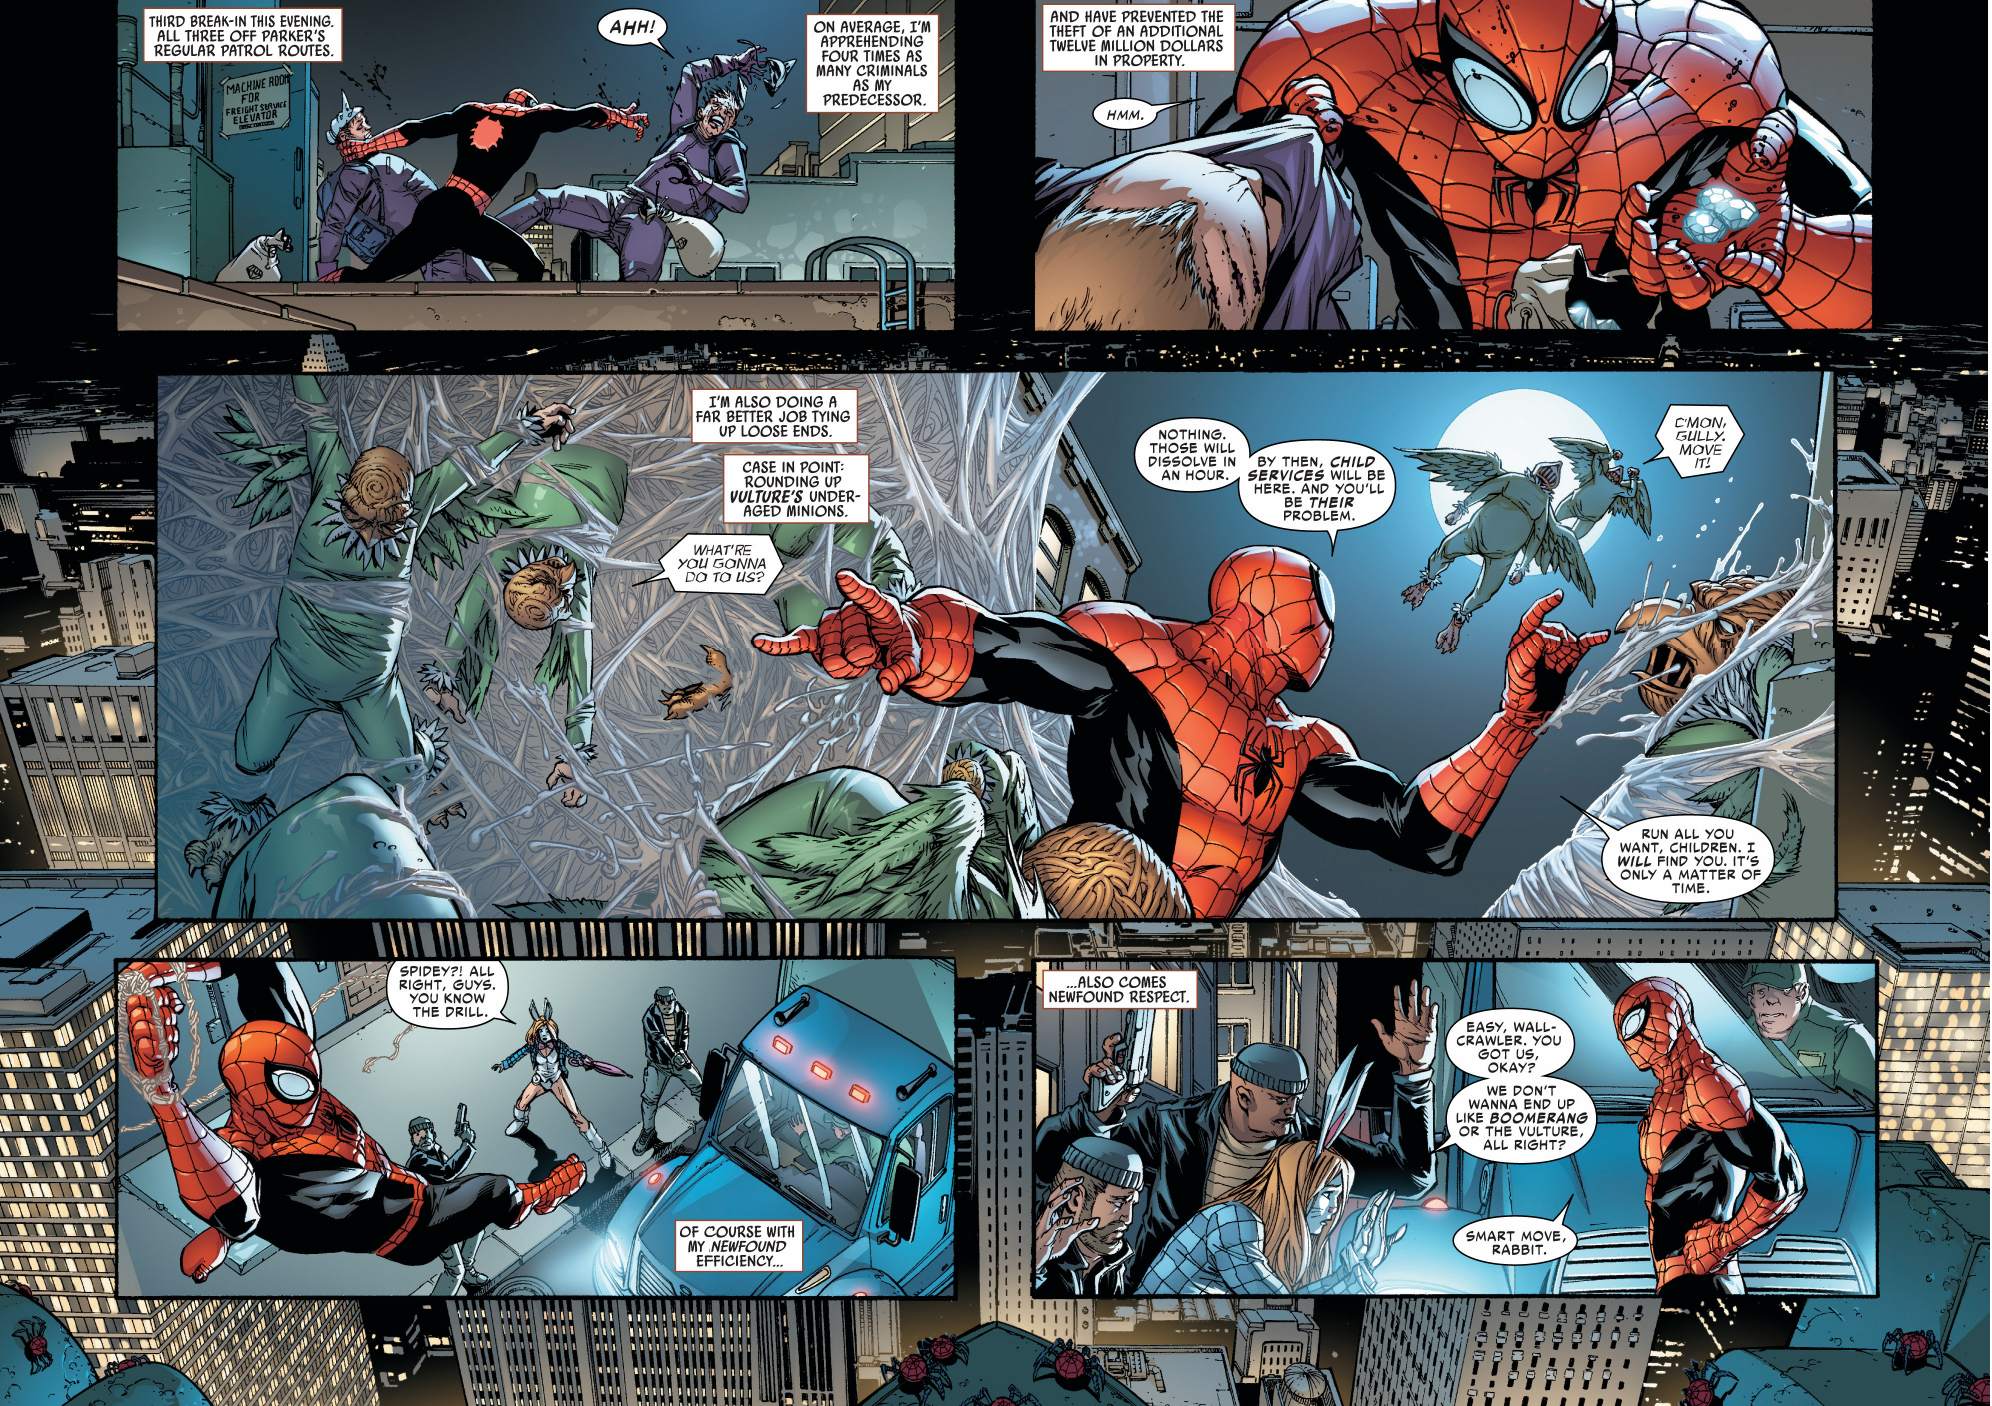 Superior Spider-Man's Crime Fighting Results   Comicnewbies